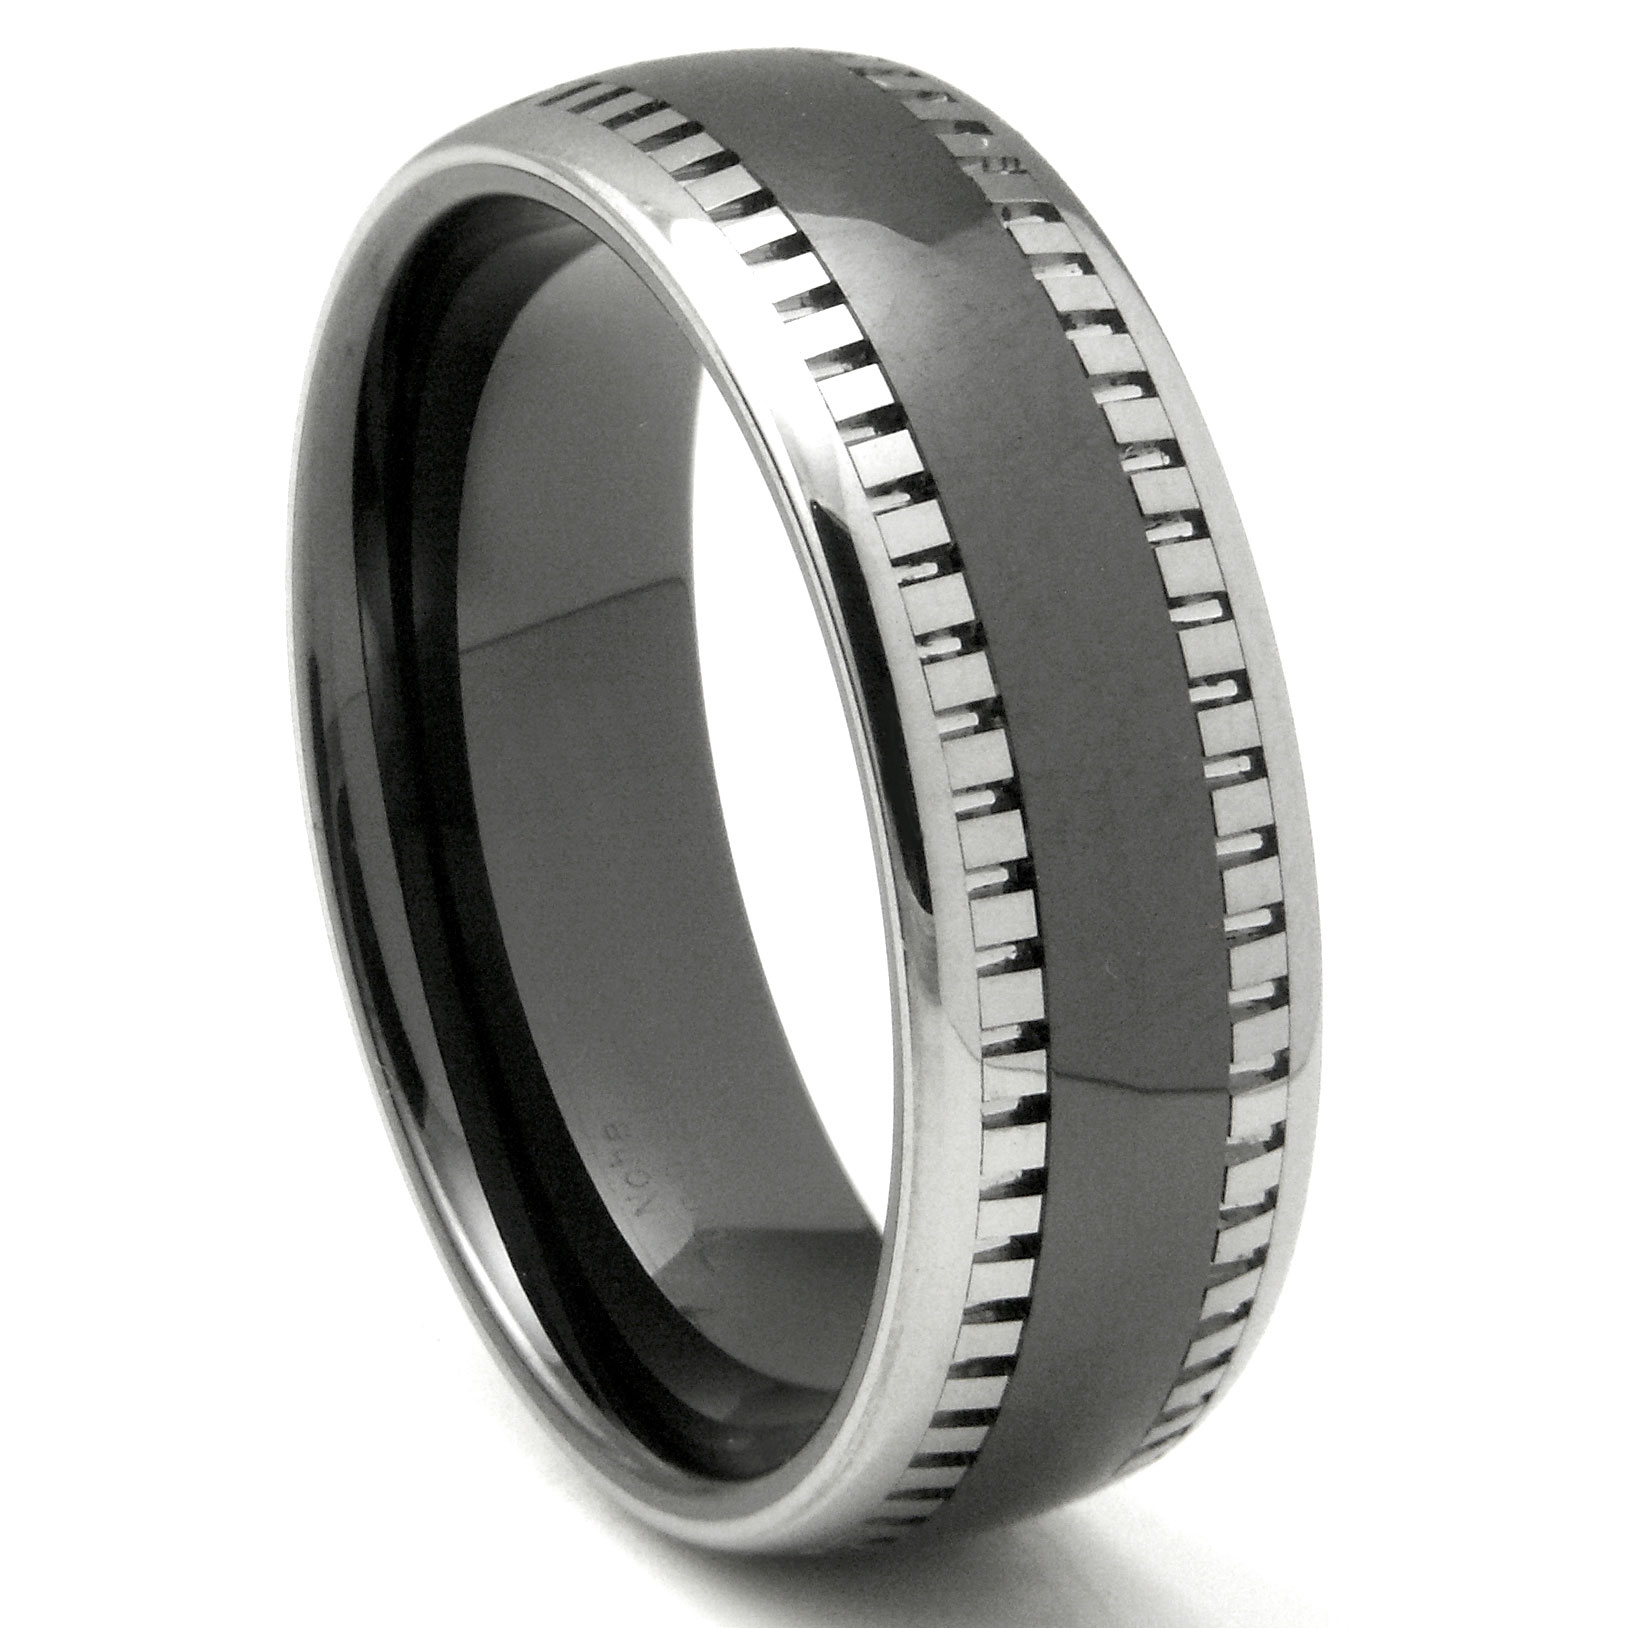 band rings black en kay hover triton kaystore mens mv tungsten carbide wedding to zm zoom